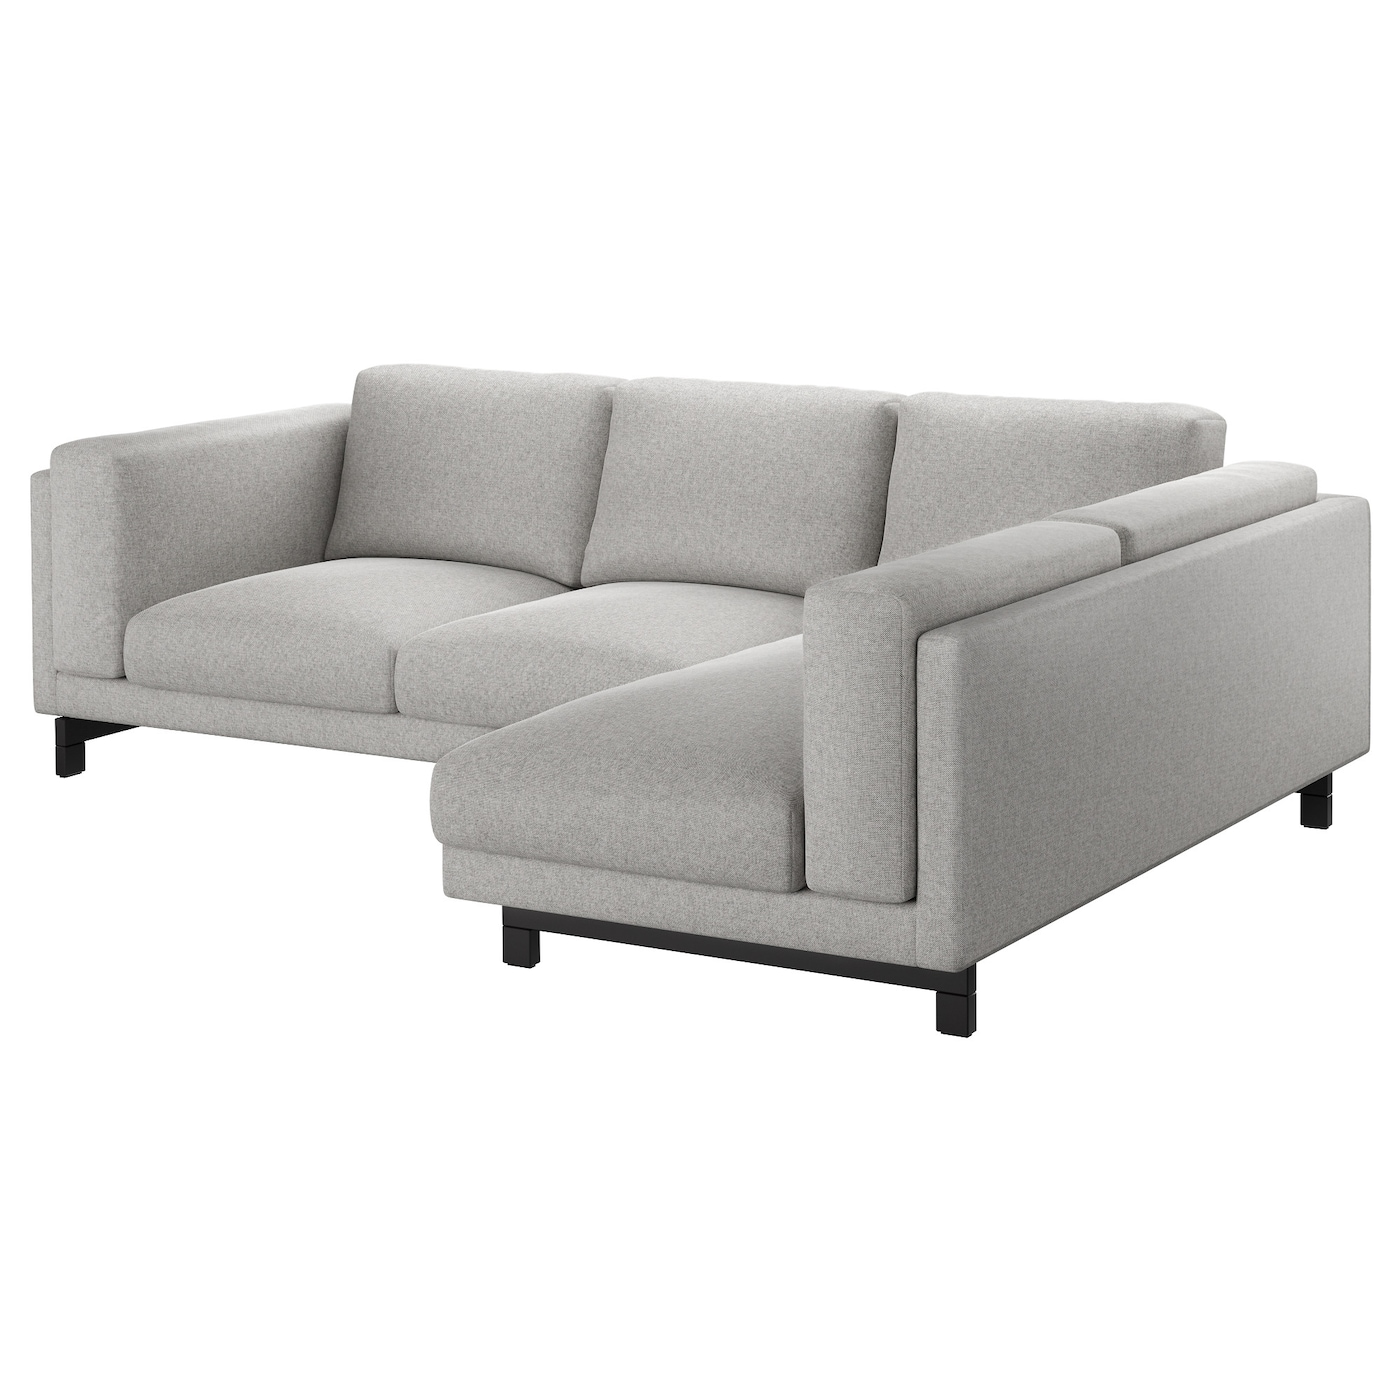 nockeby 3 seat sofa with chaise longue right tallmyra